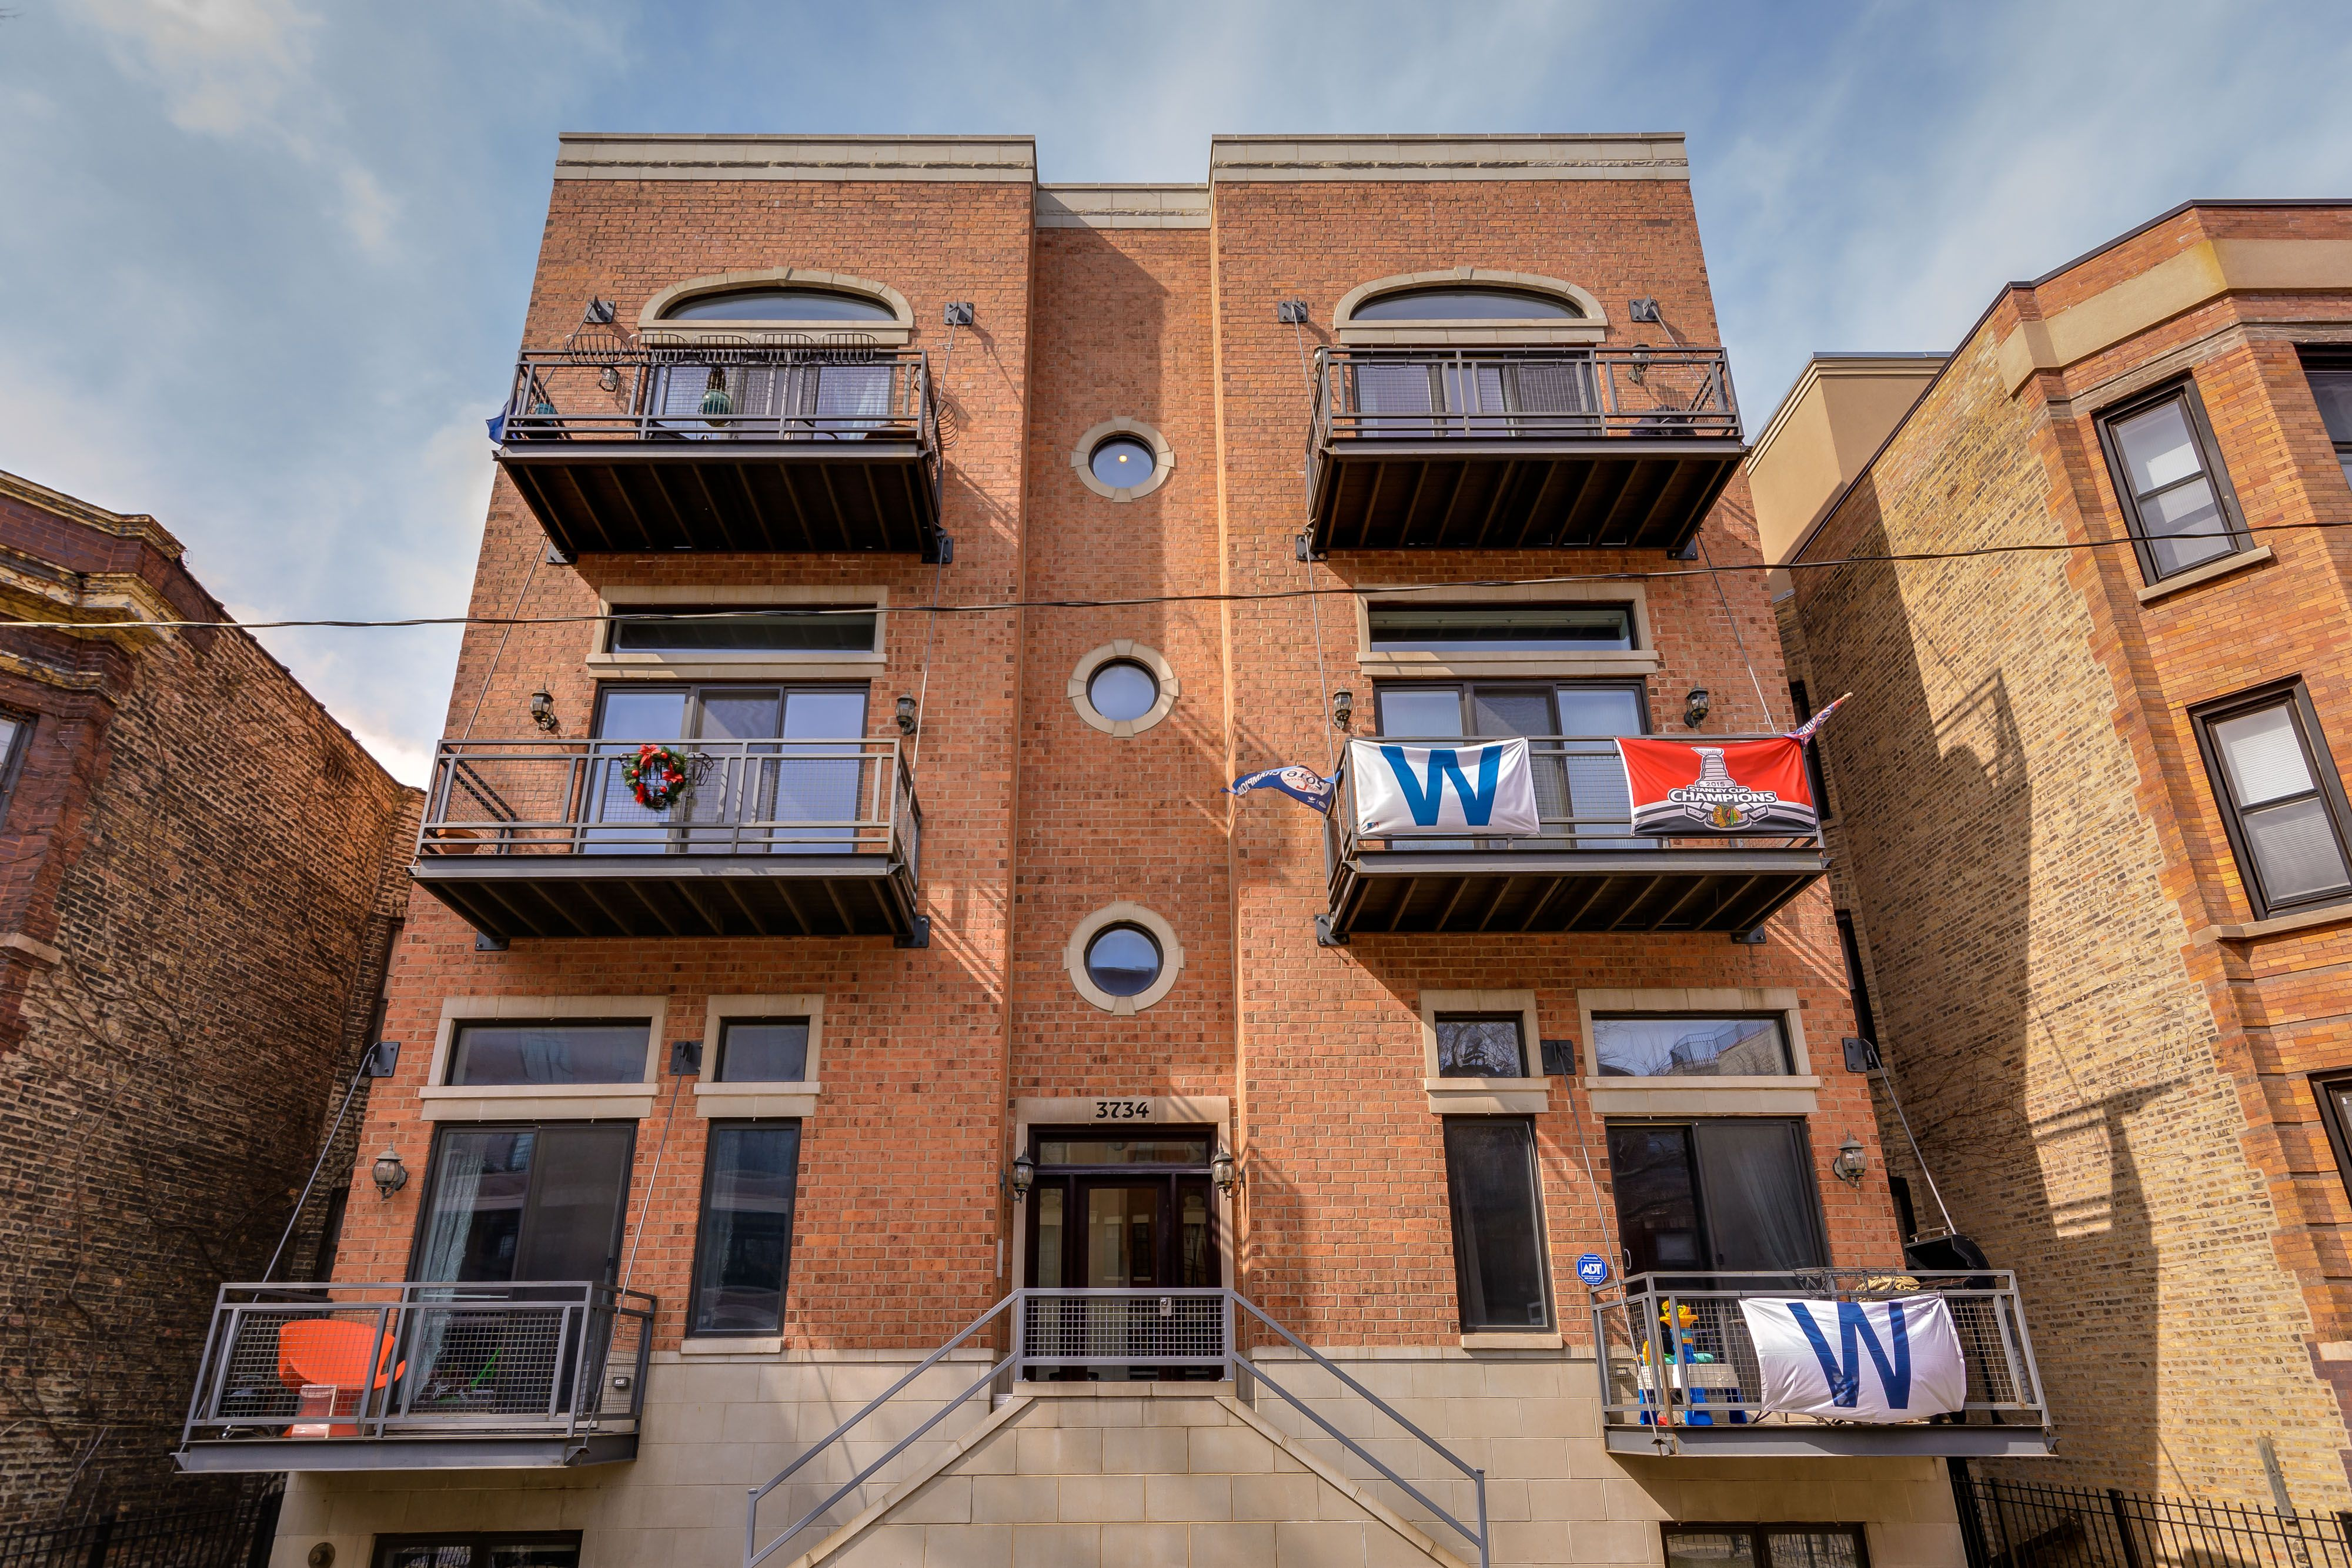 Modern Red Brick 3 Story Apartment Building In Wrigleyville Chicago Featuring Porthole Windows And Ind Lakeview Apartments Chicago Apartment Apartment Building